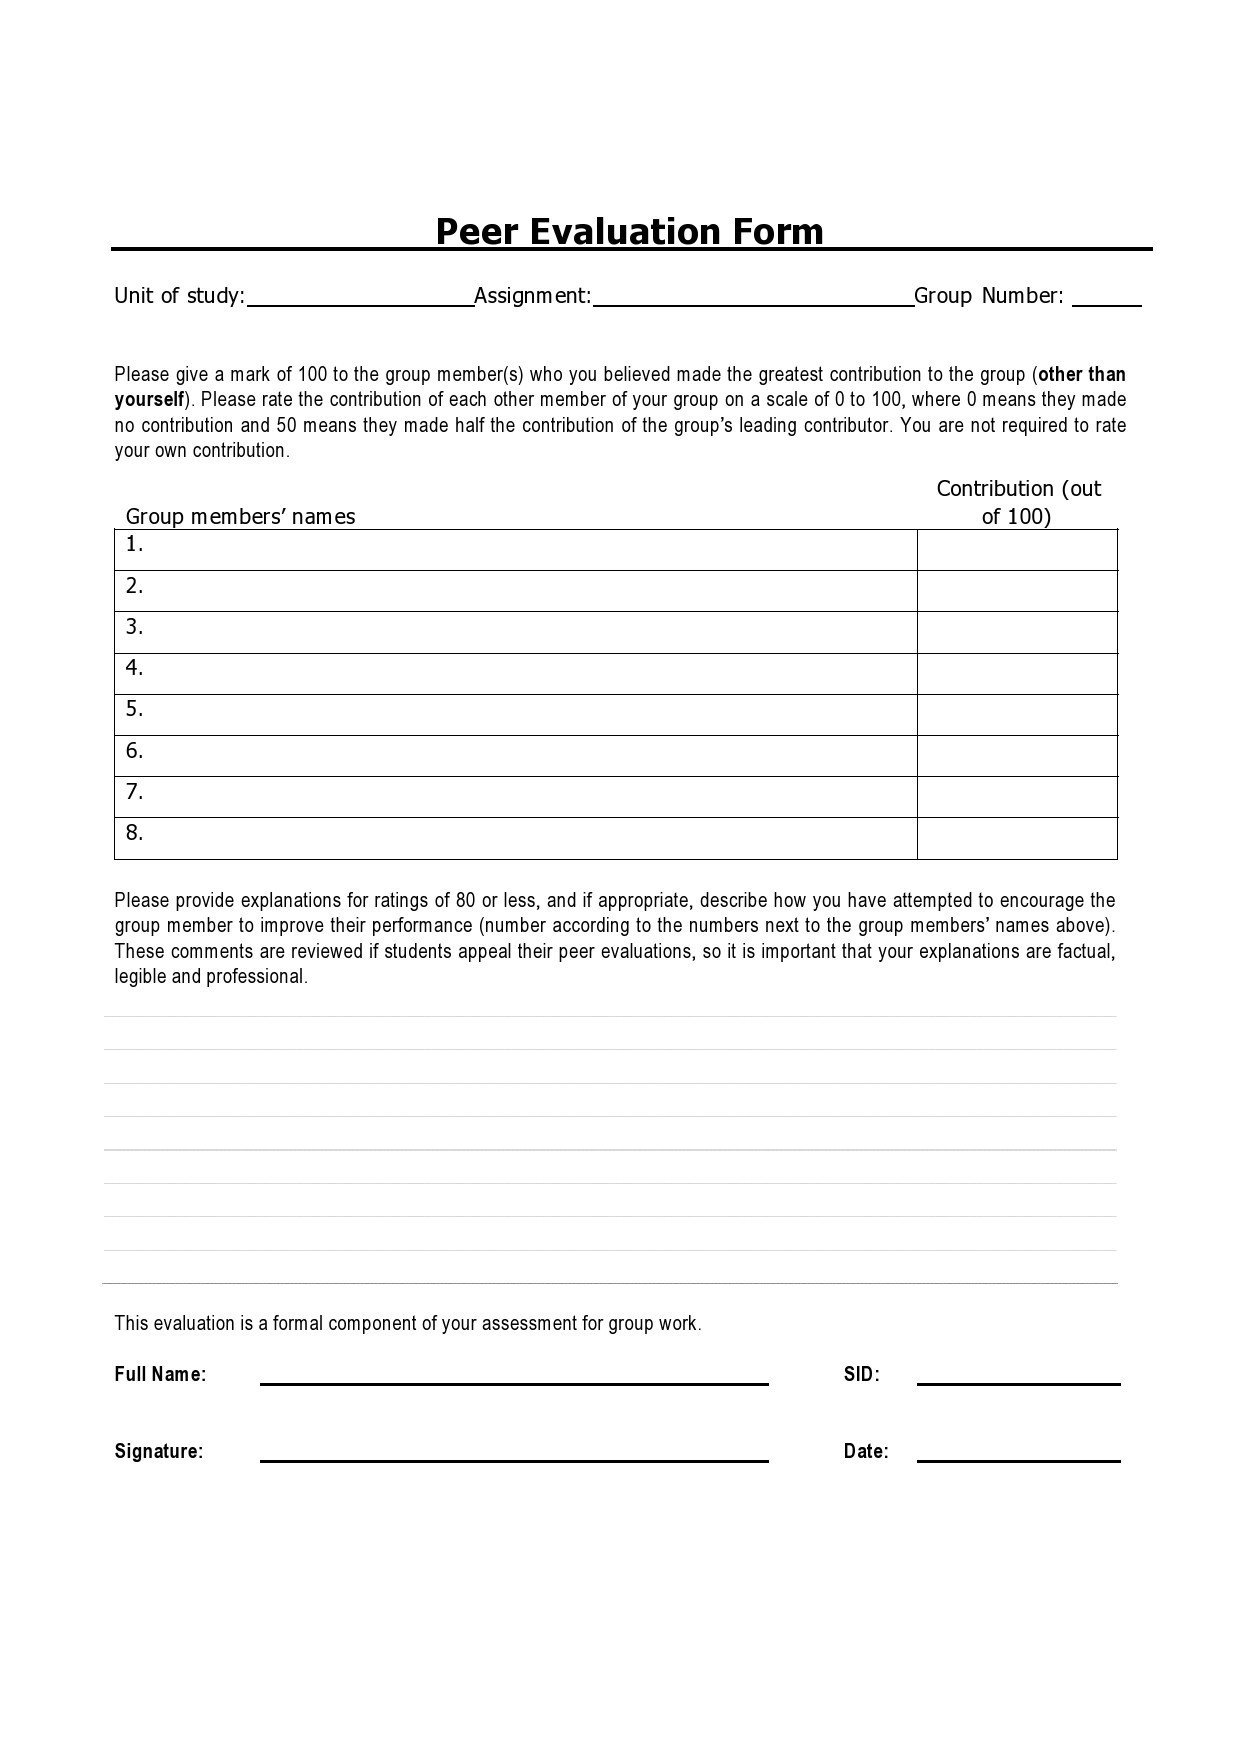 Free peer evaluation form 04